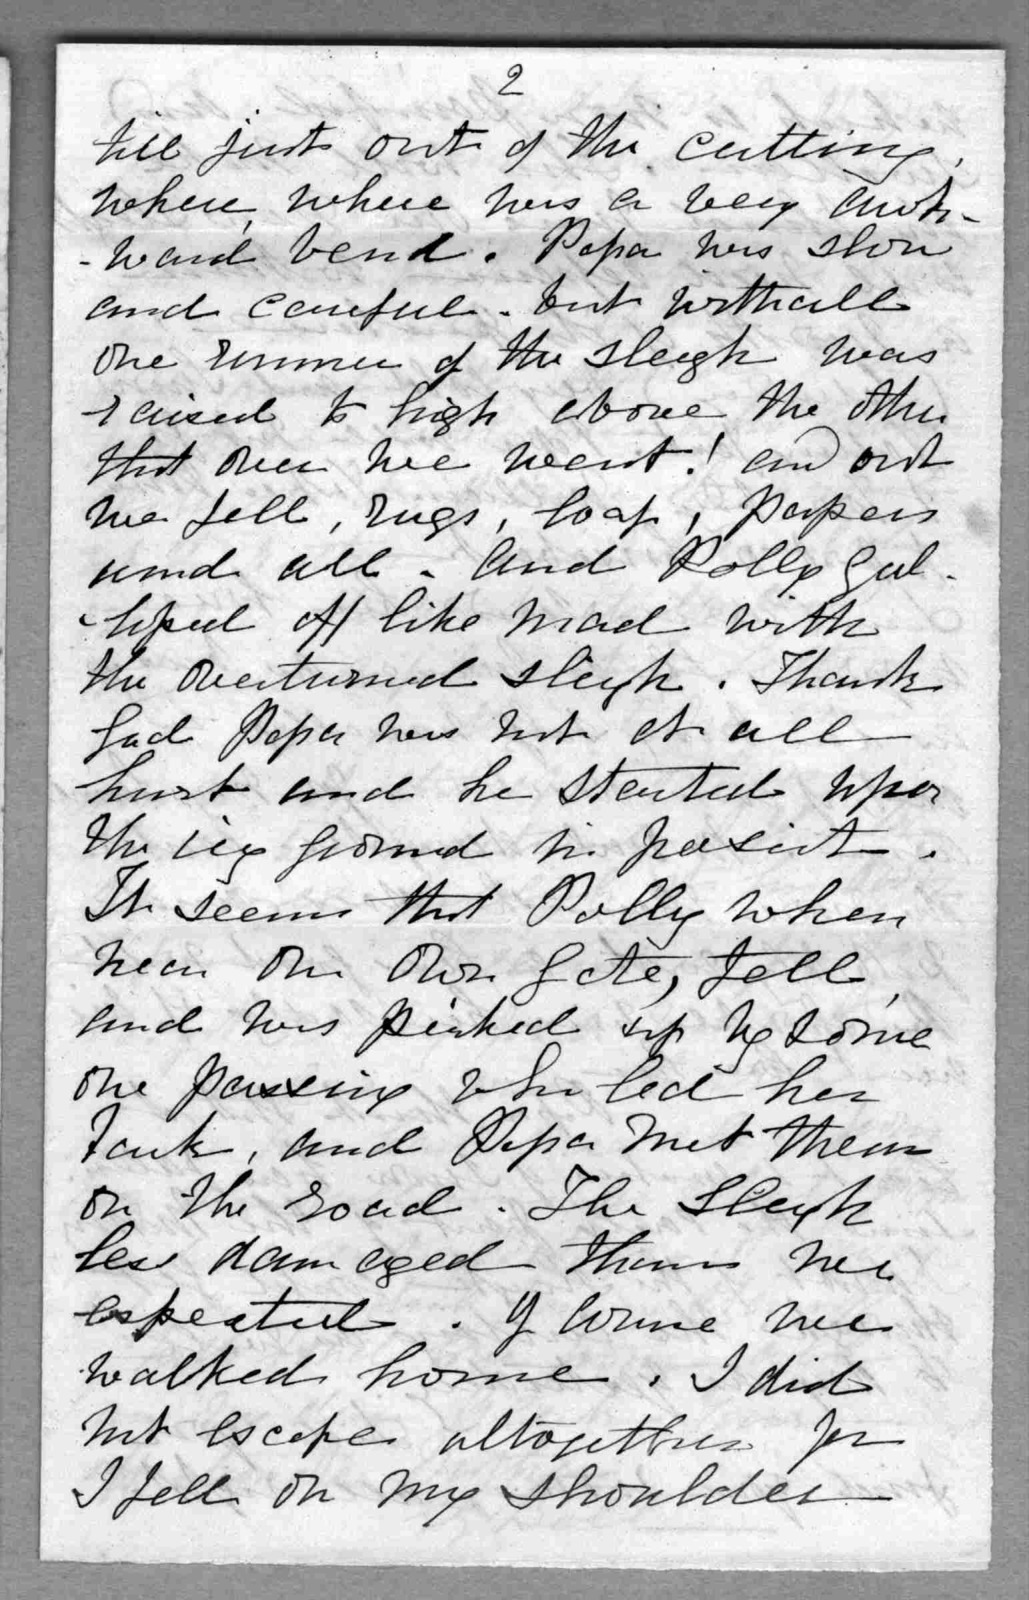 Letter from Eliza Symonds Bell to Alexander Graham Bell, January 17, 1873